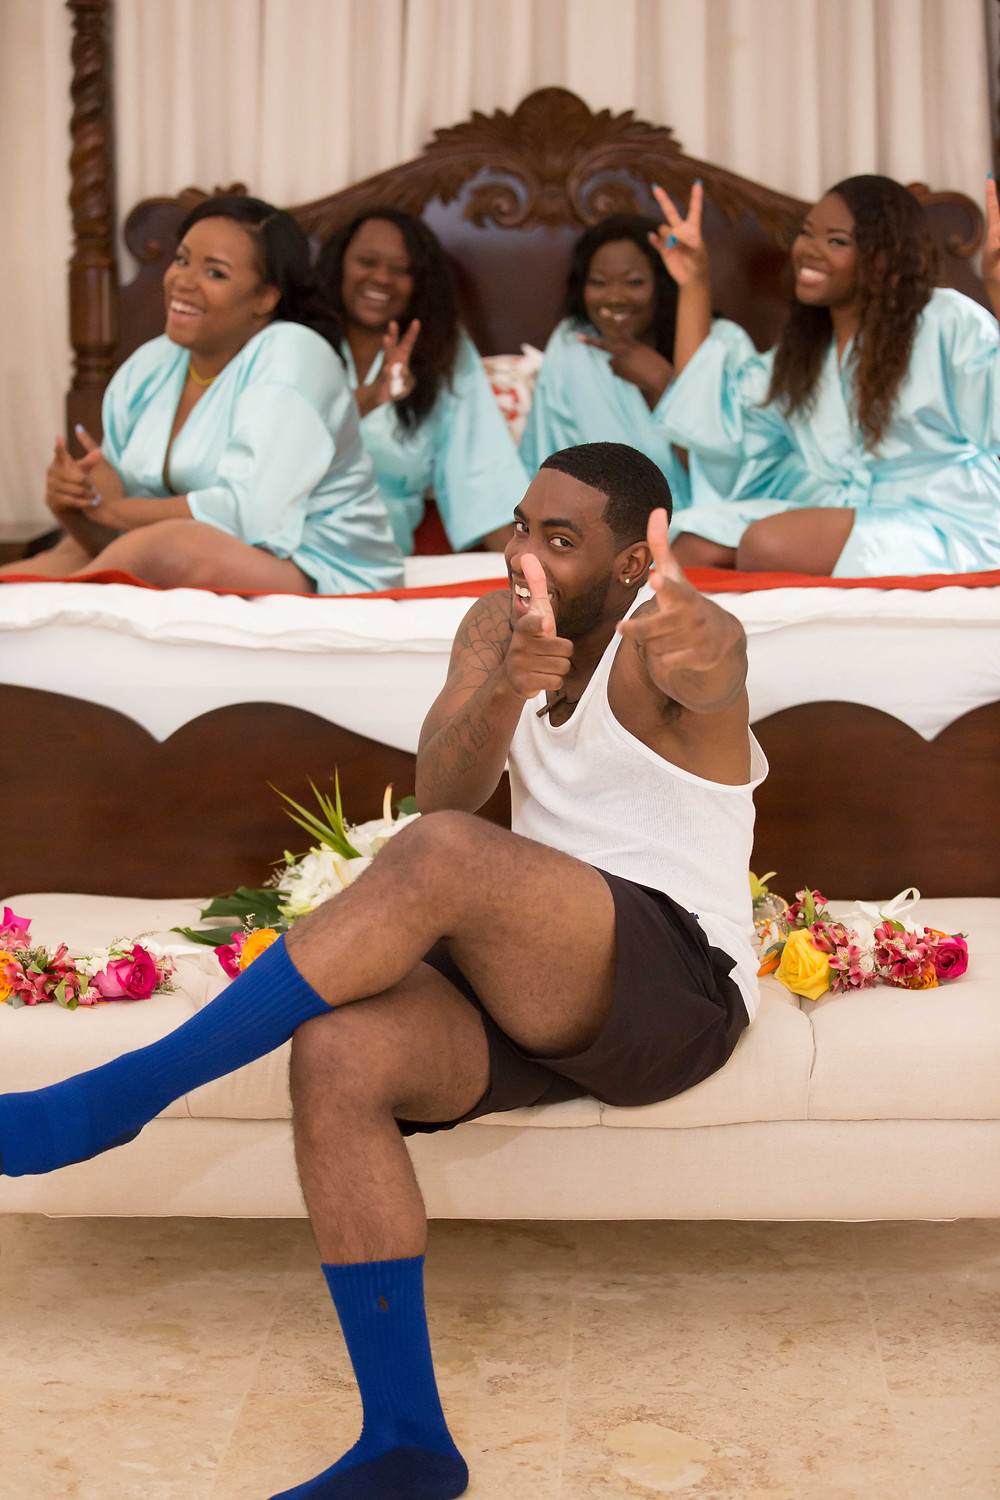 The groom having some fun with the bridesmaids before the destination wedding in Punta Cana, Dominican Republic.